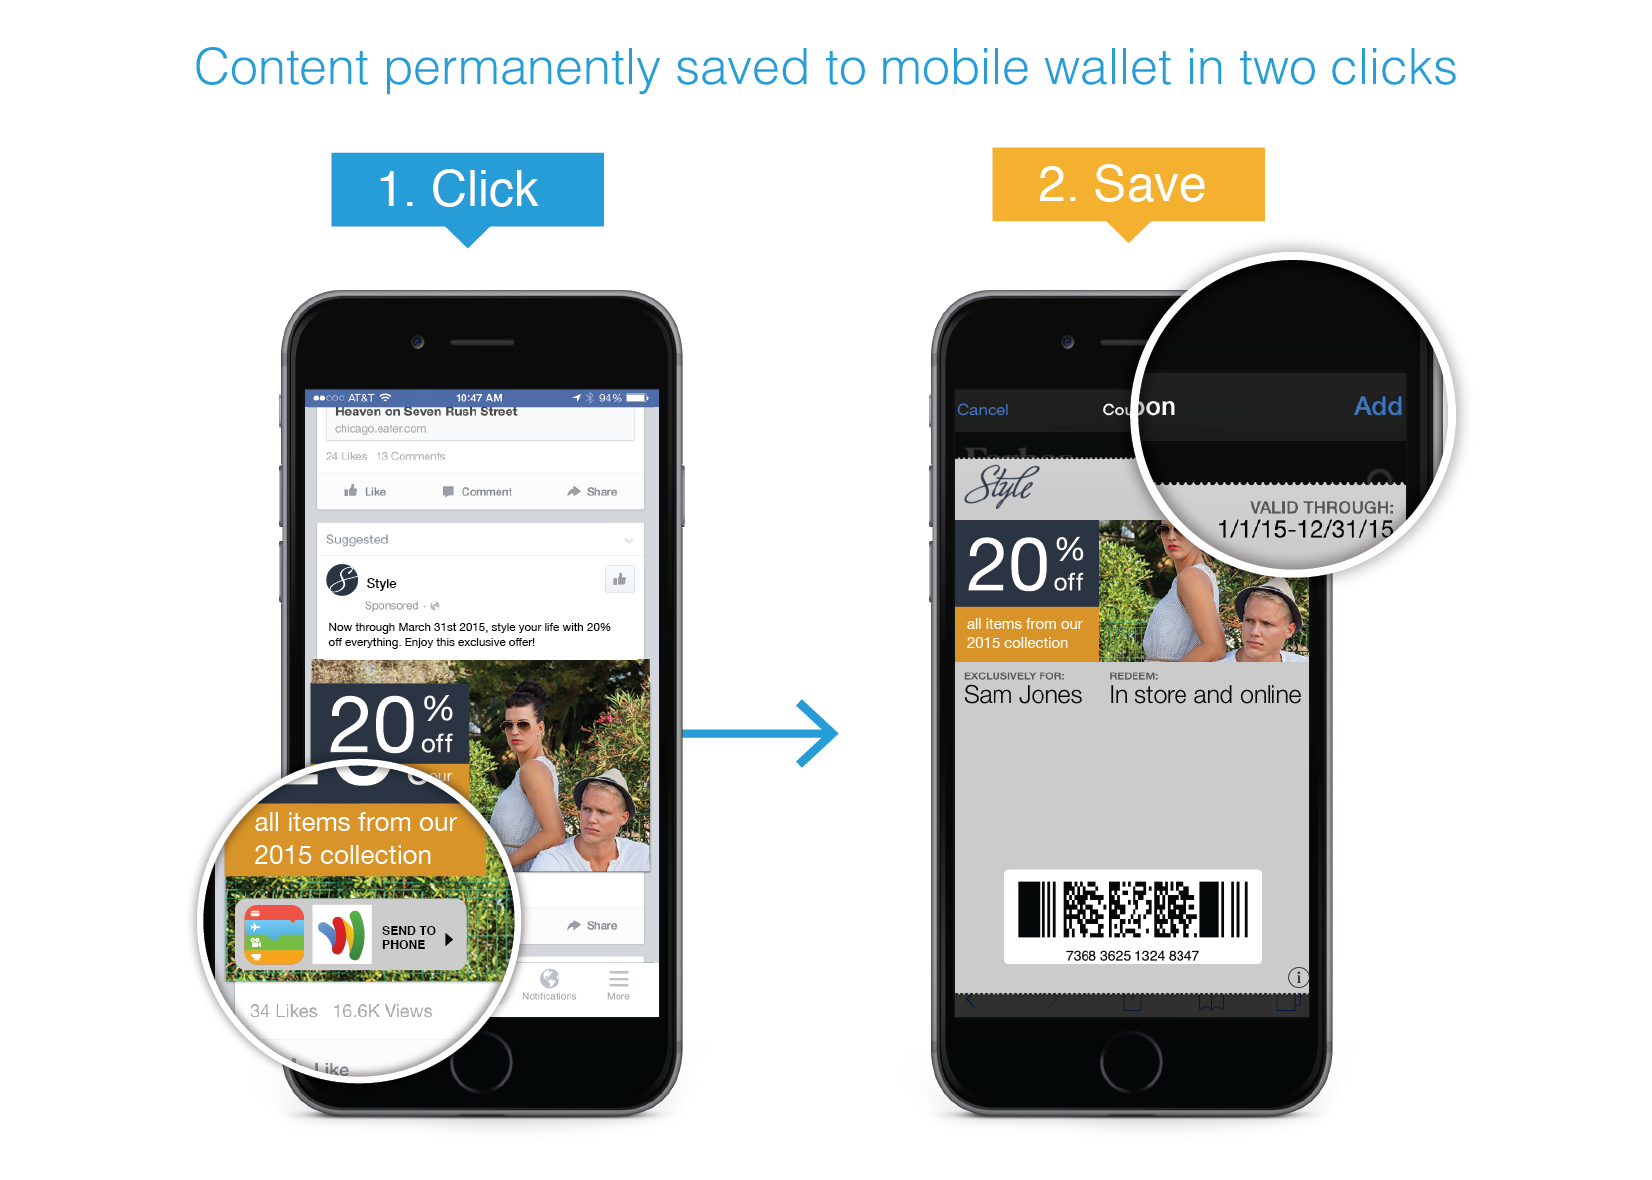 Vibes Links Mobile Wallets and Advertising